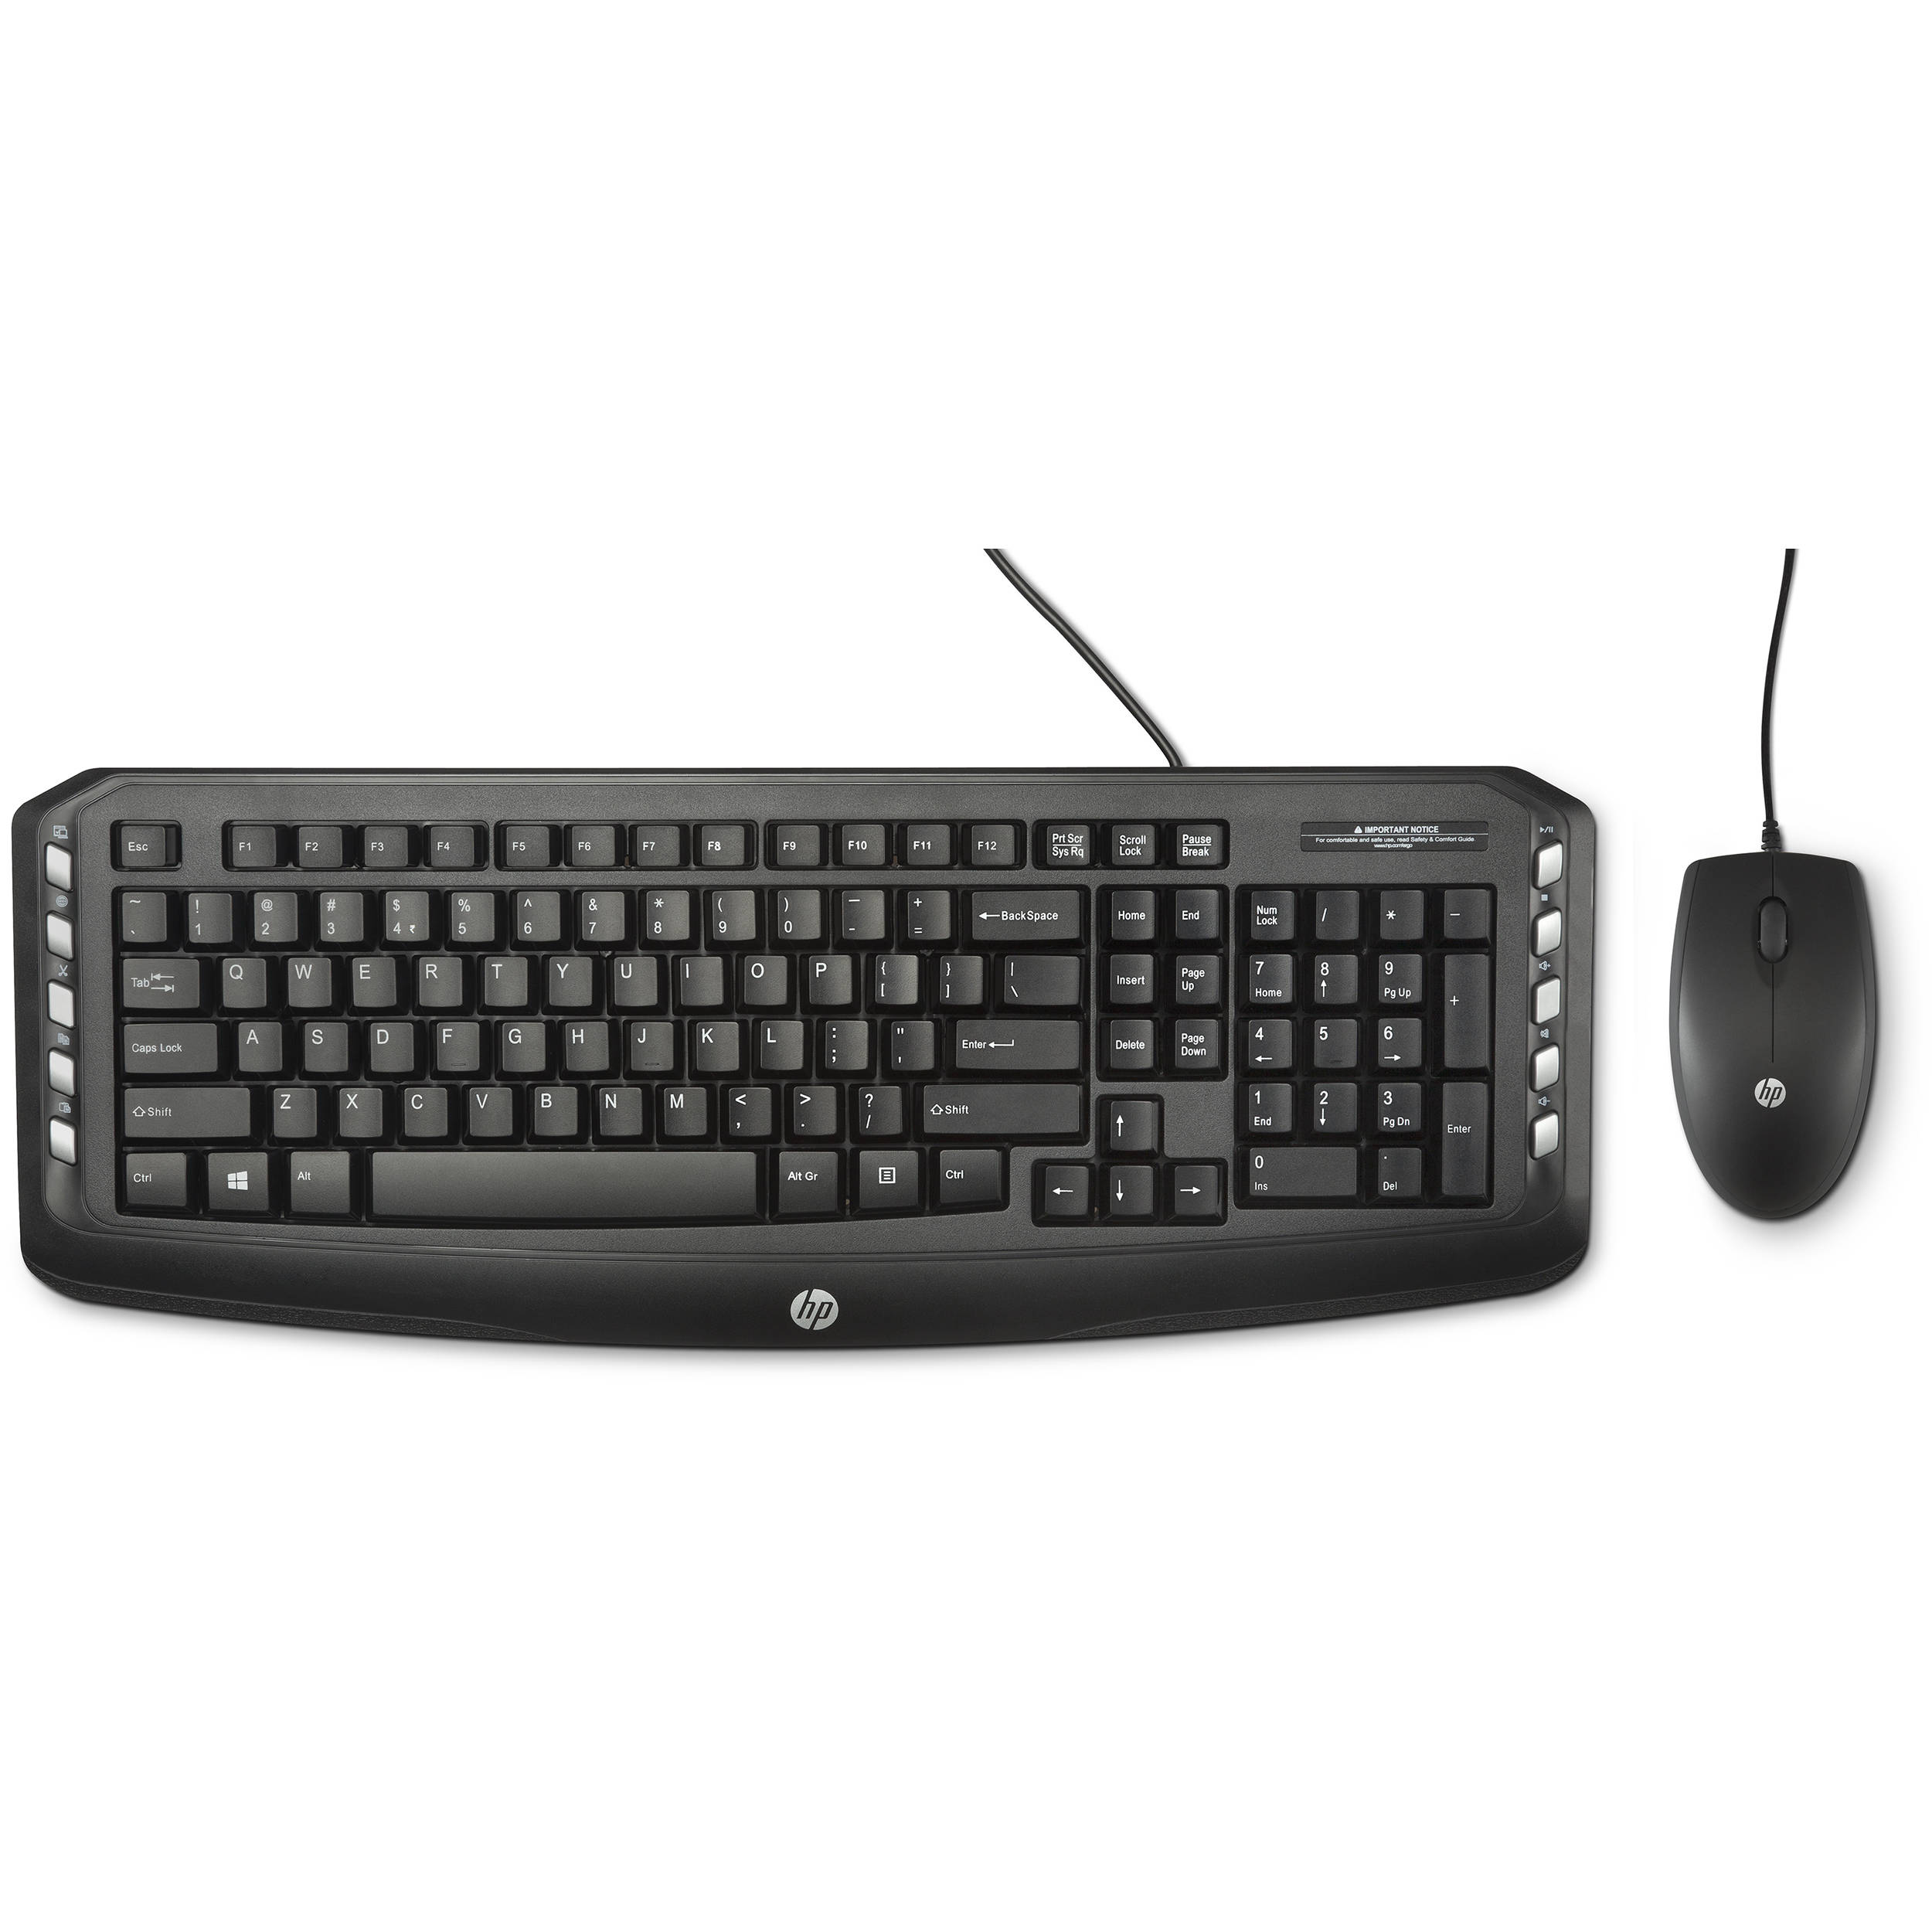 HP C2600 Wired Keyboard And Mouse